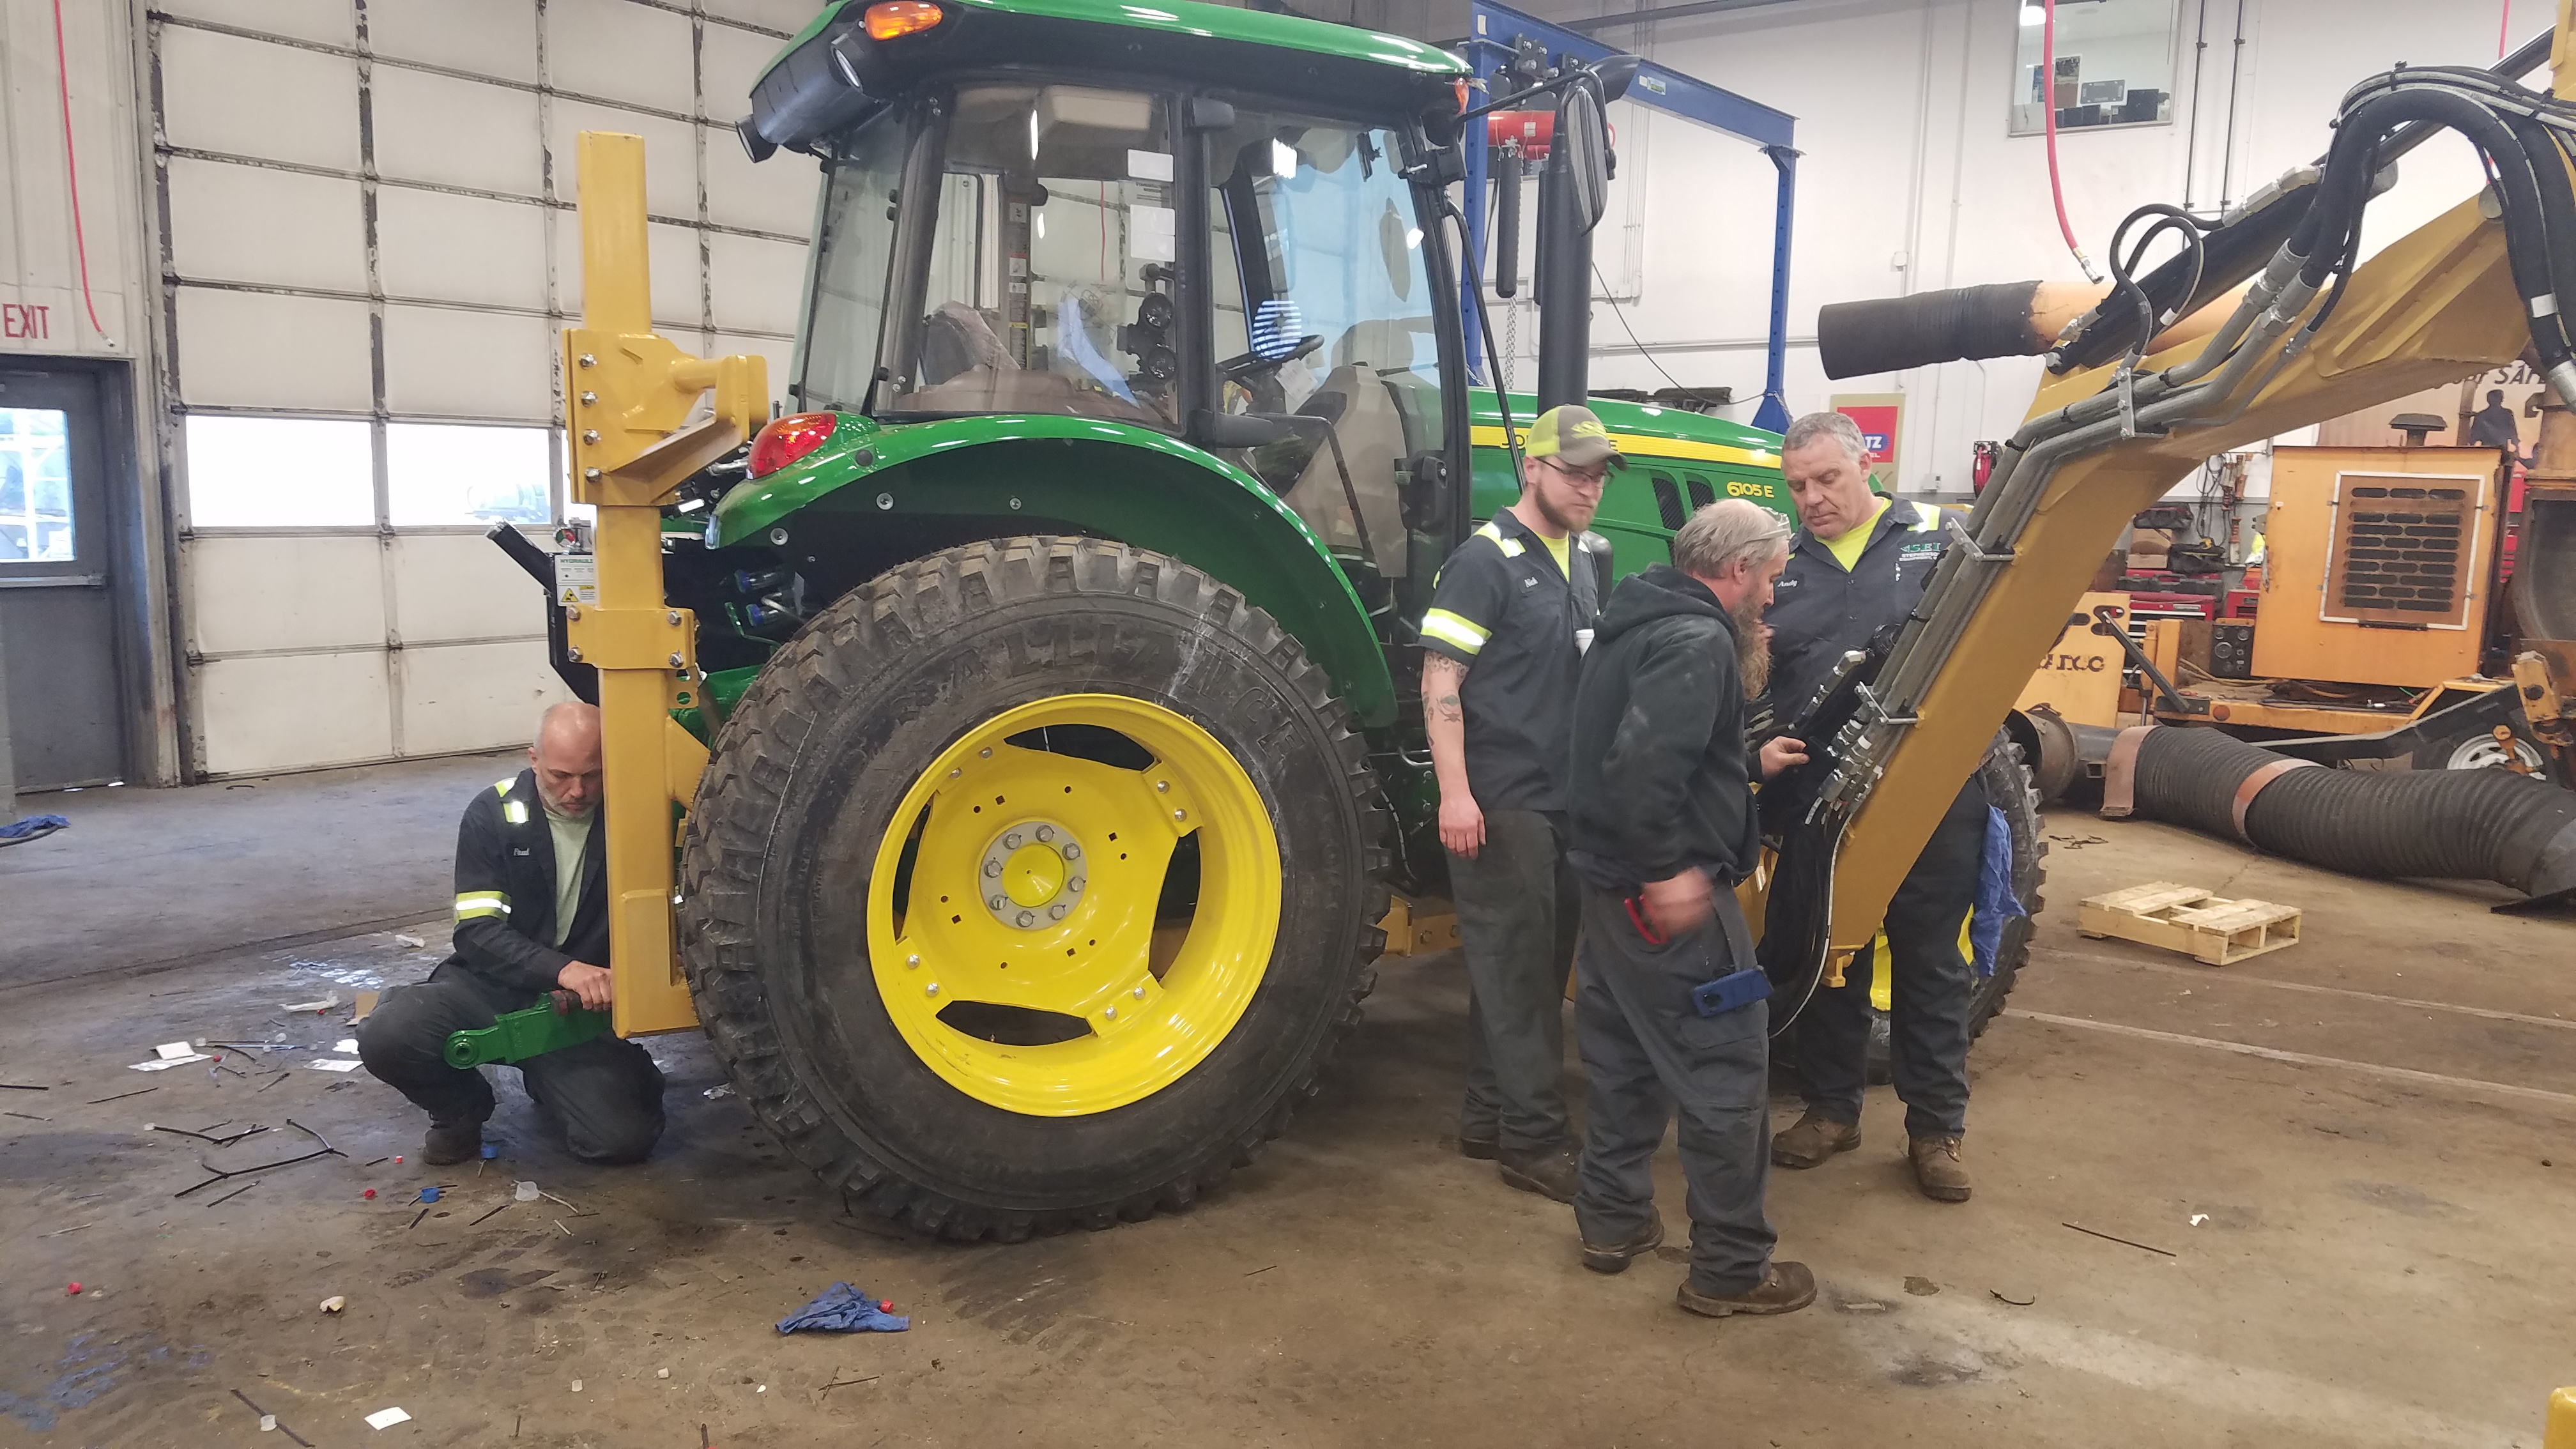 Municipal Training on a Tractor